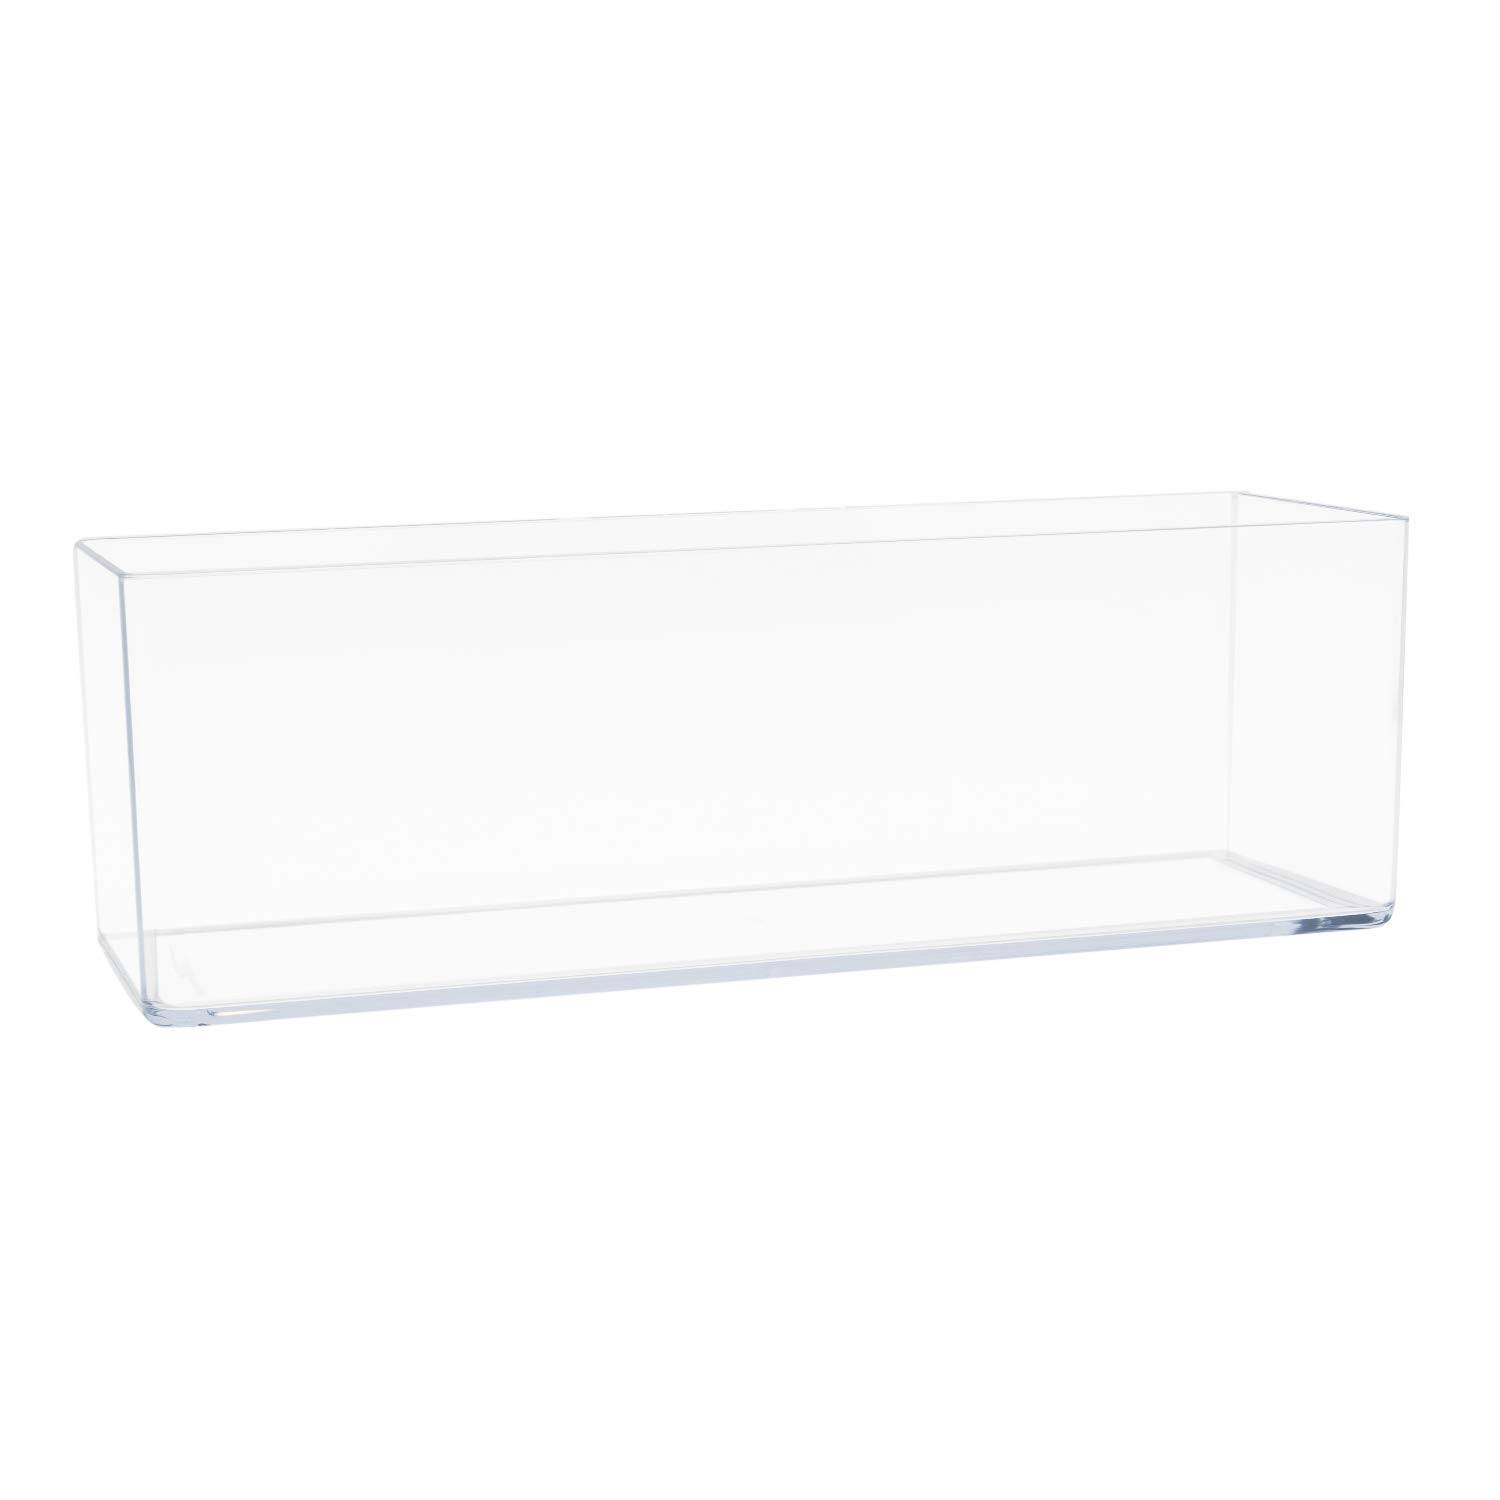 "Royal Imports Flower Vase Acrylic Rectangle- Decorative Centerpiece for Home or Wedding - Non Breakable Plastic, 4"" X12 Low Square - Clear"